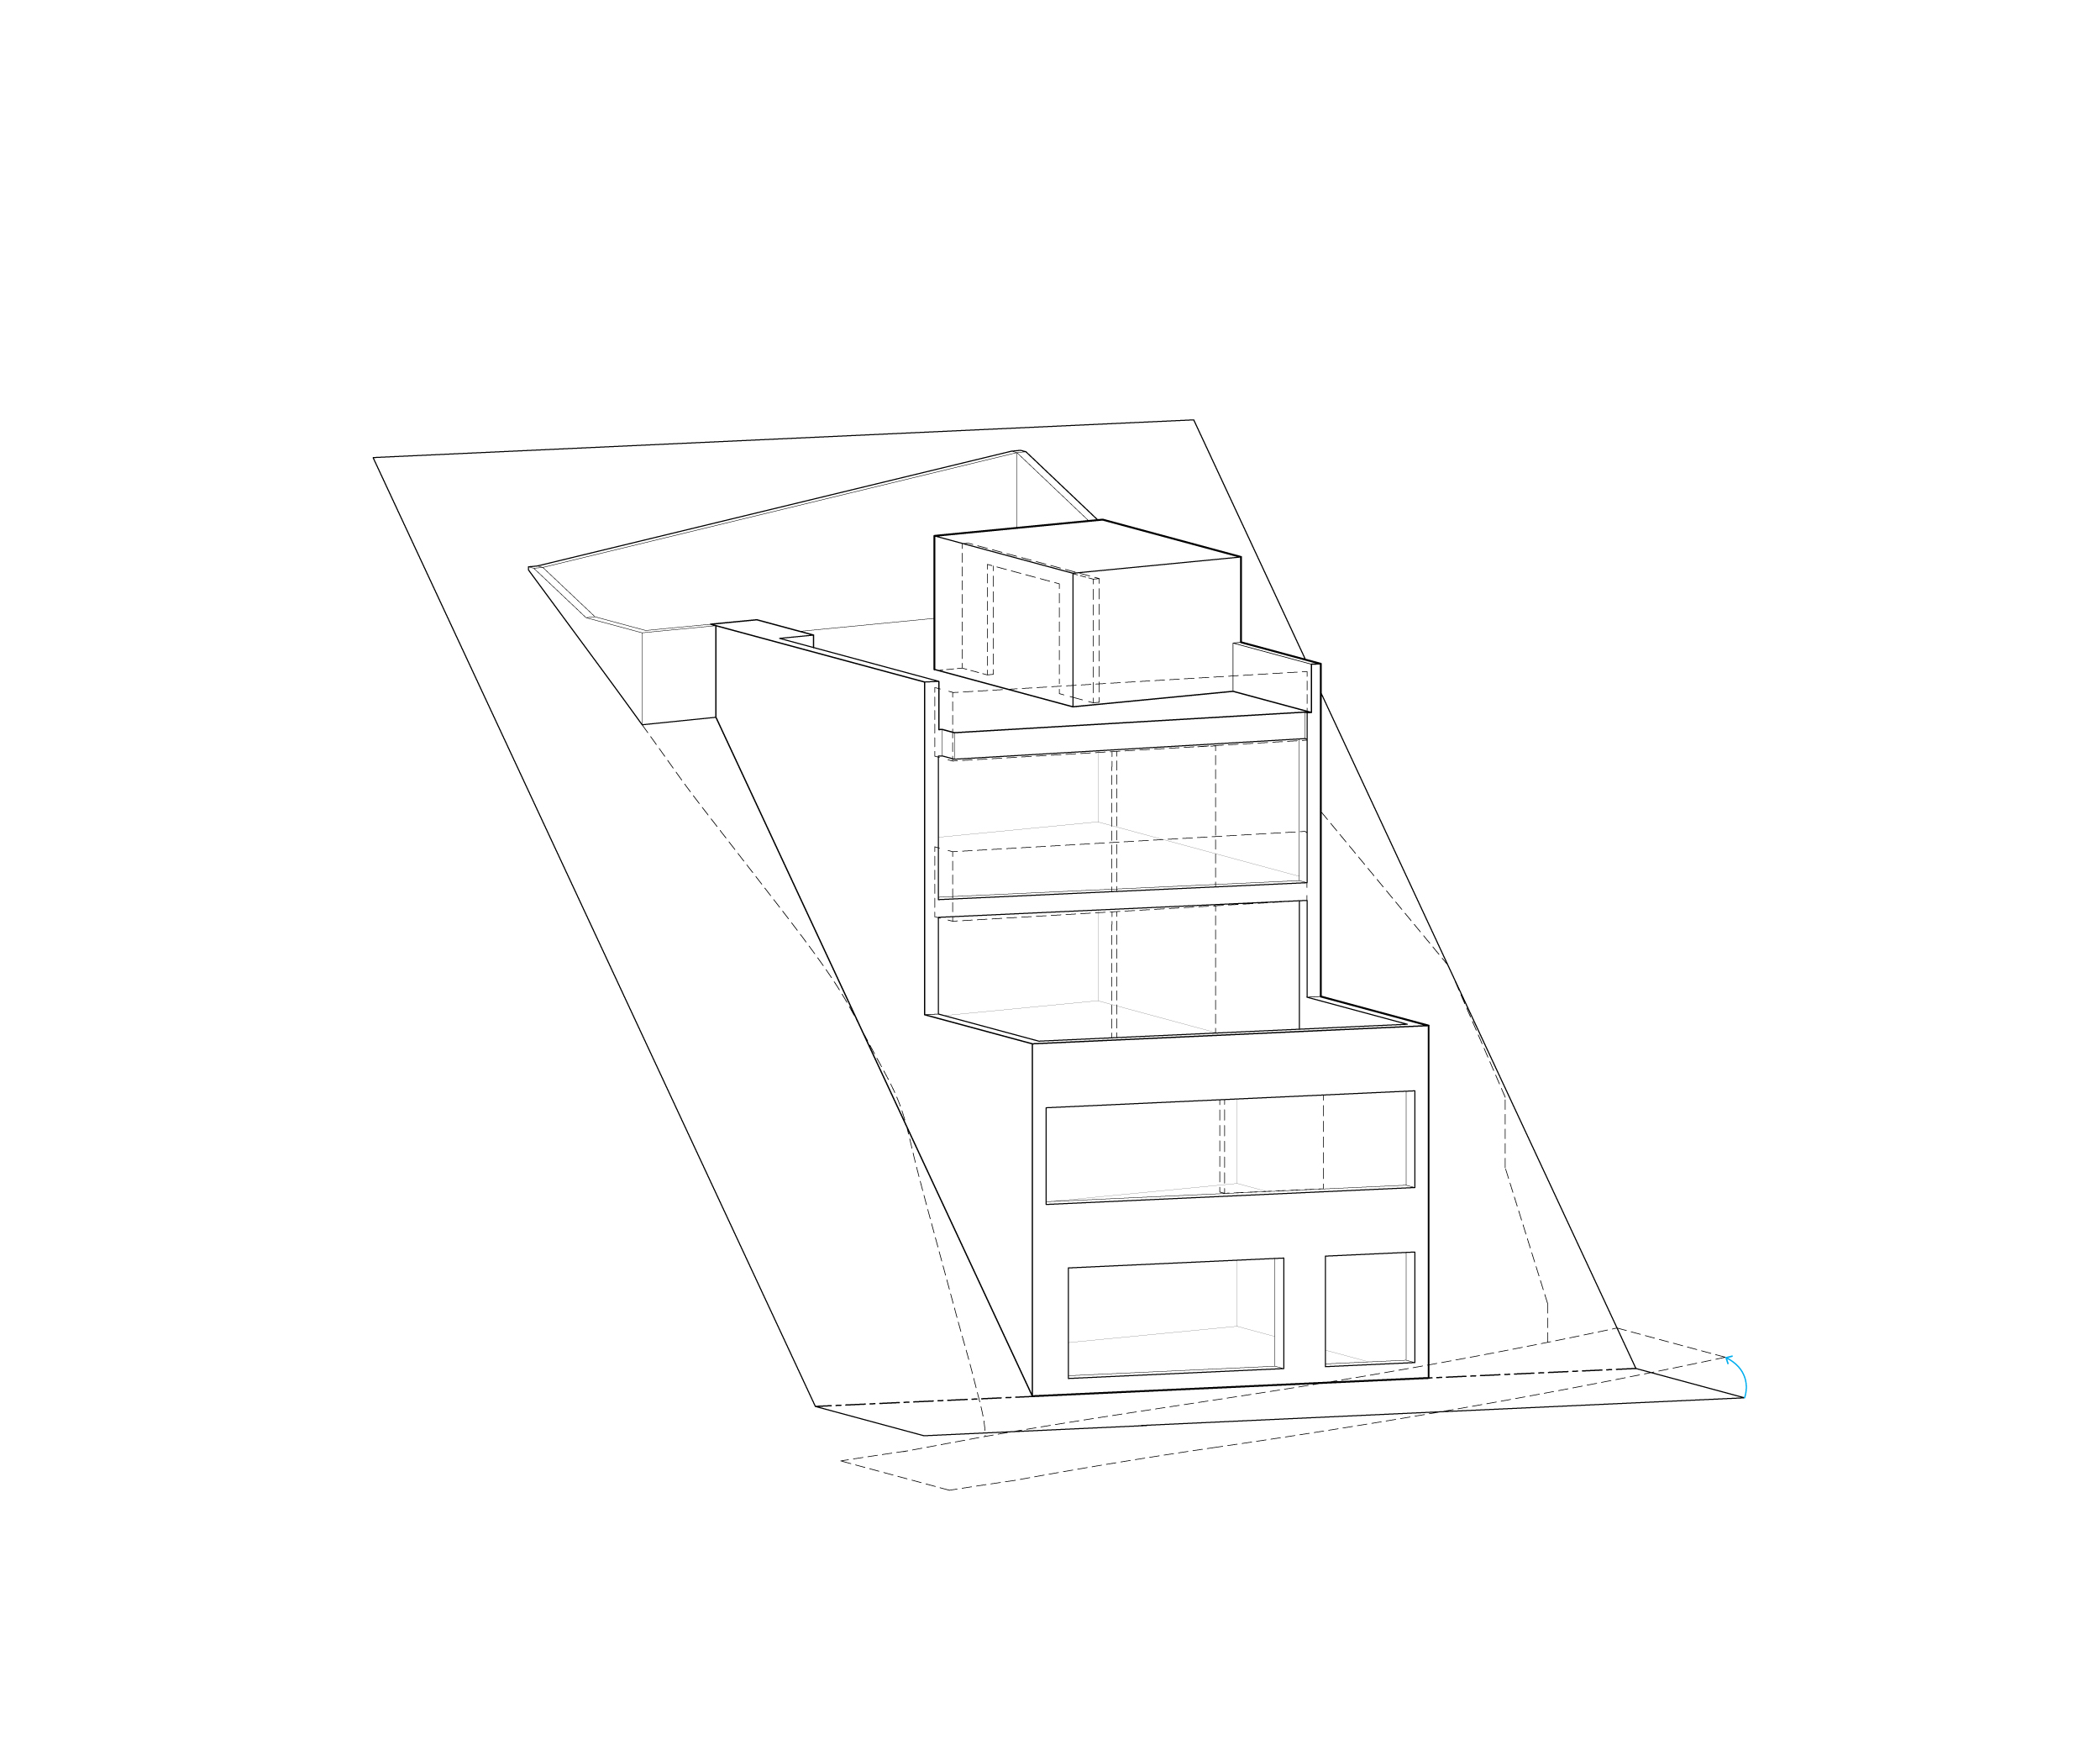 Horizontal balconies protrude from the front facade, extending the interior space towards the view and a band of walls creates a vertical element that provides structural continuity. Finally, retaining walls are added along the sideyards to confirm the building to the steep site.